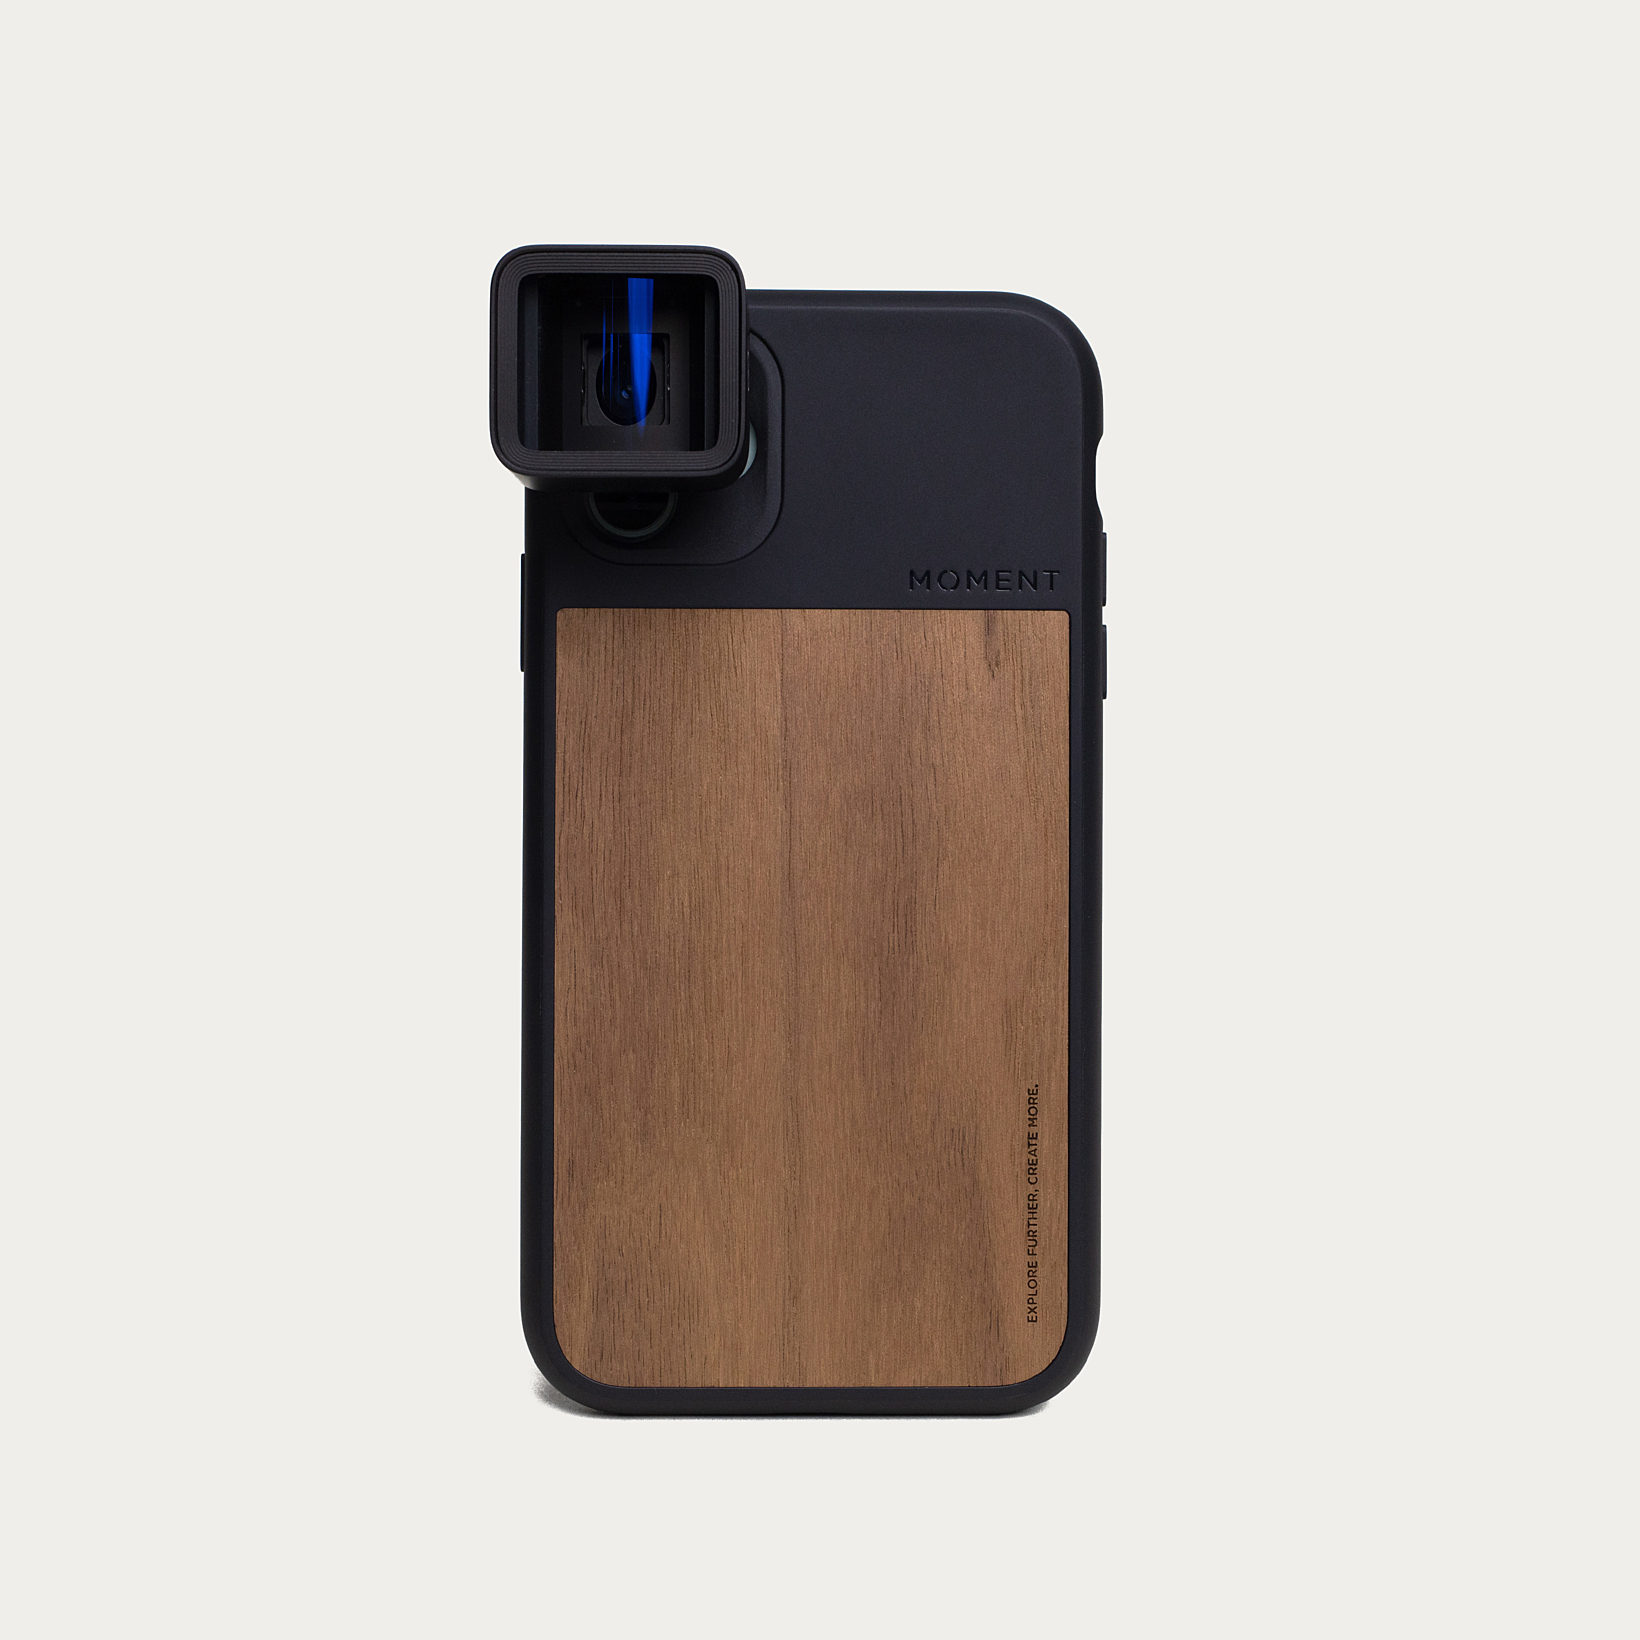 Moment Super Rugged Case With All The Features Of A Camera